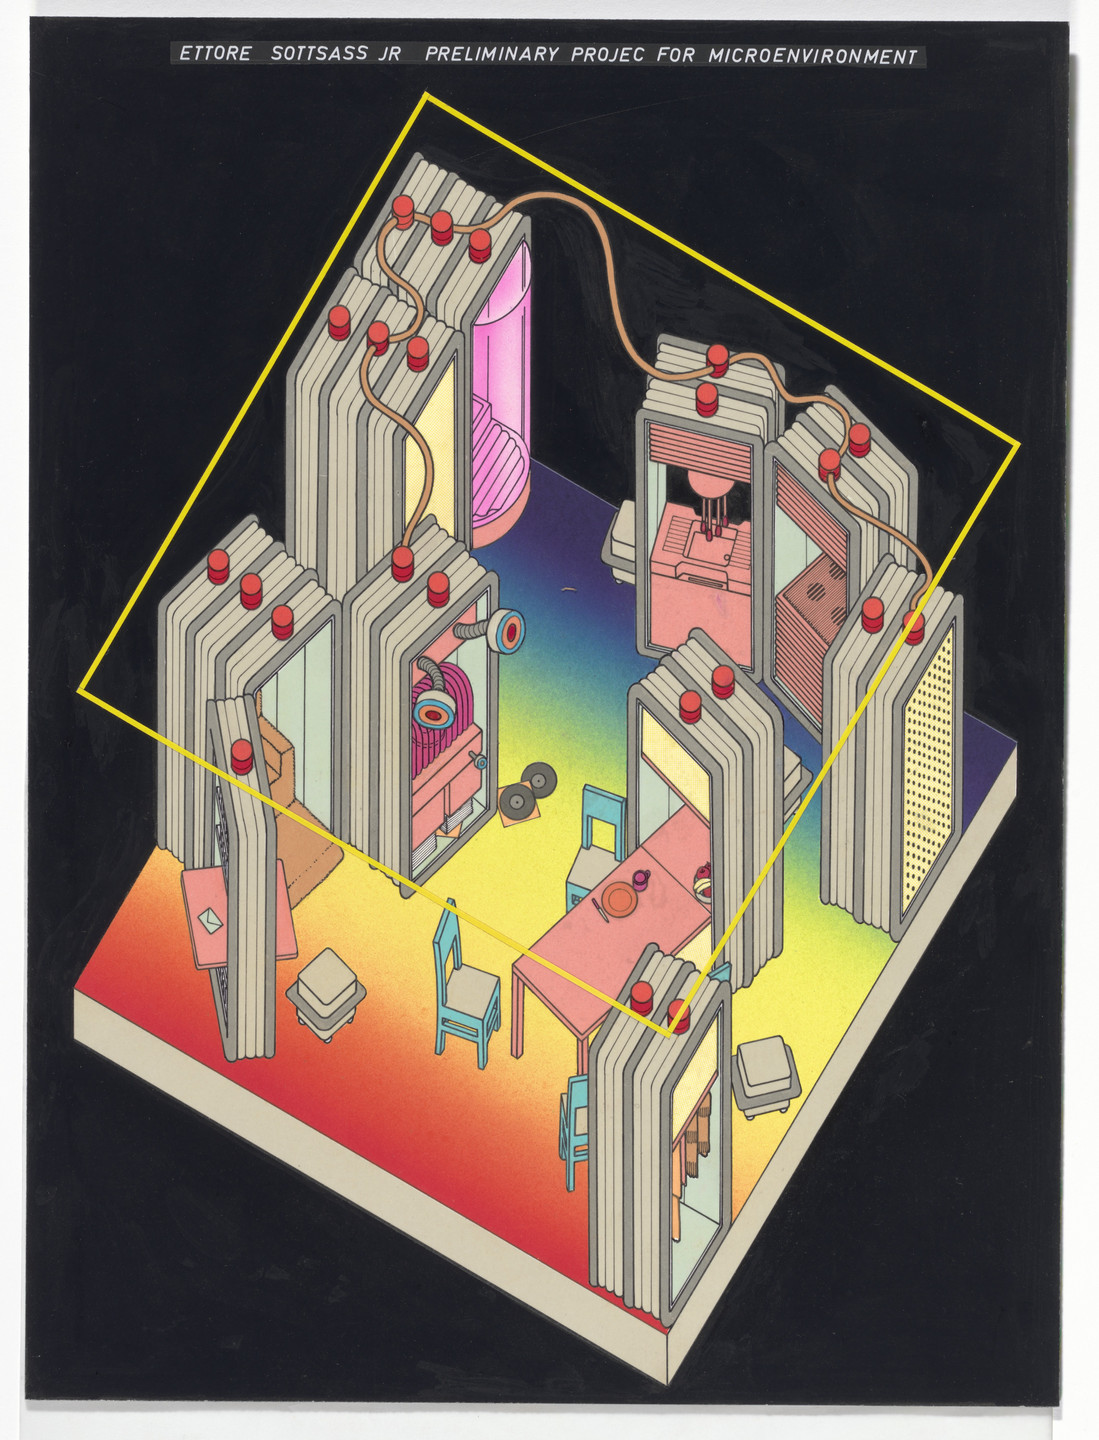 Ettore Sottsass. Preliminary Project for Microenvironment. c.1971